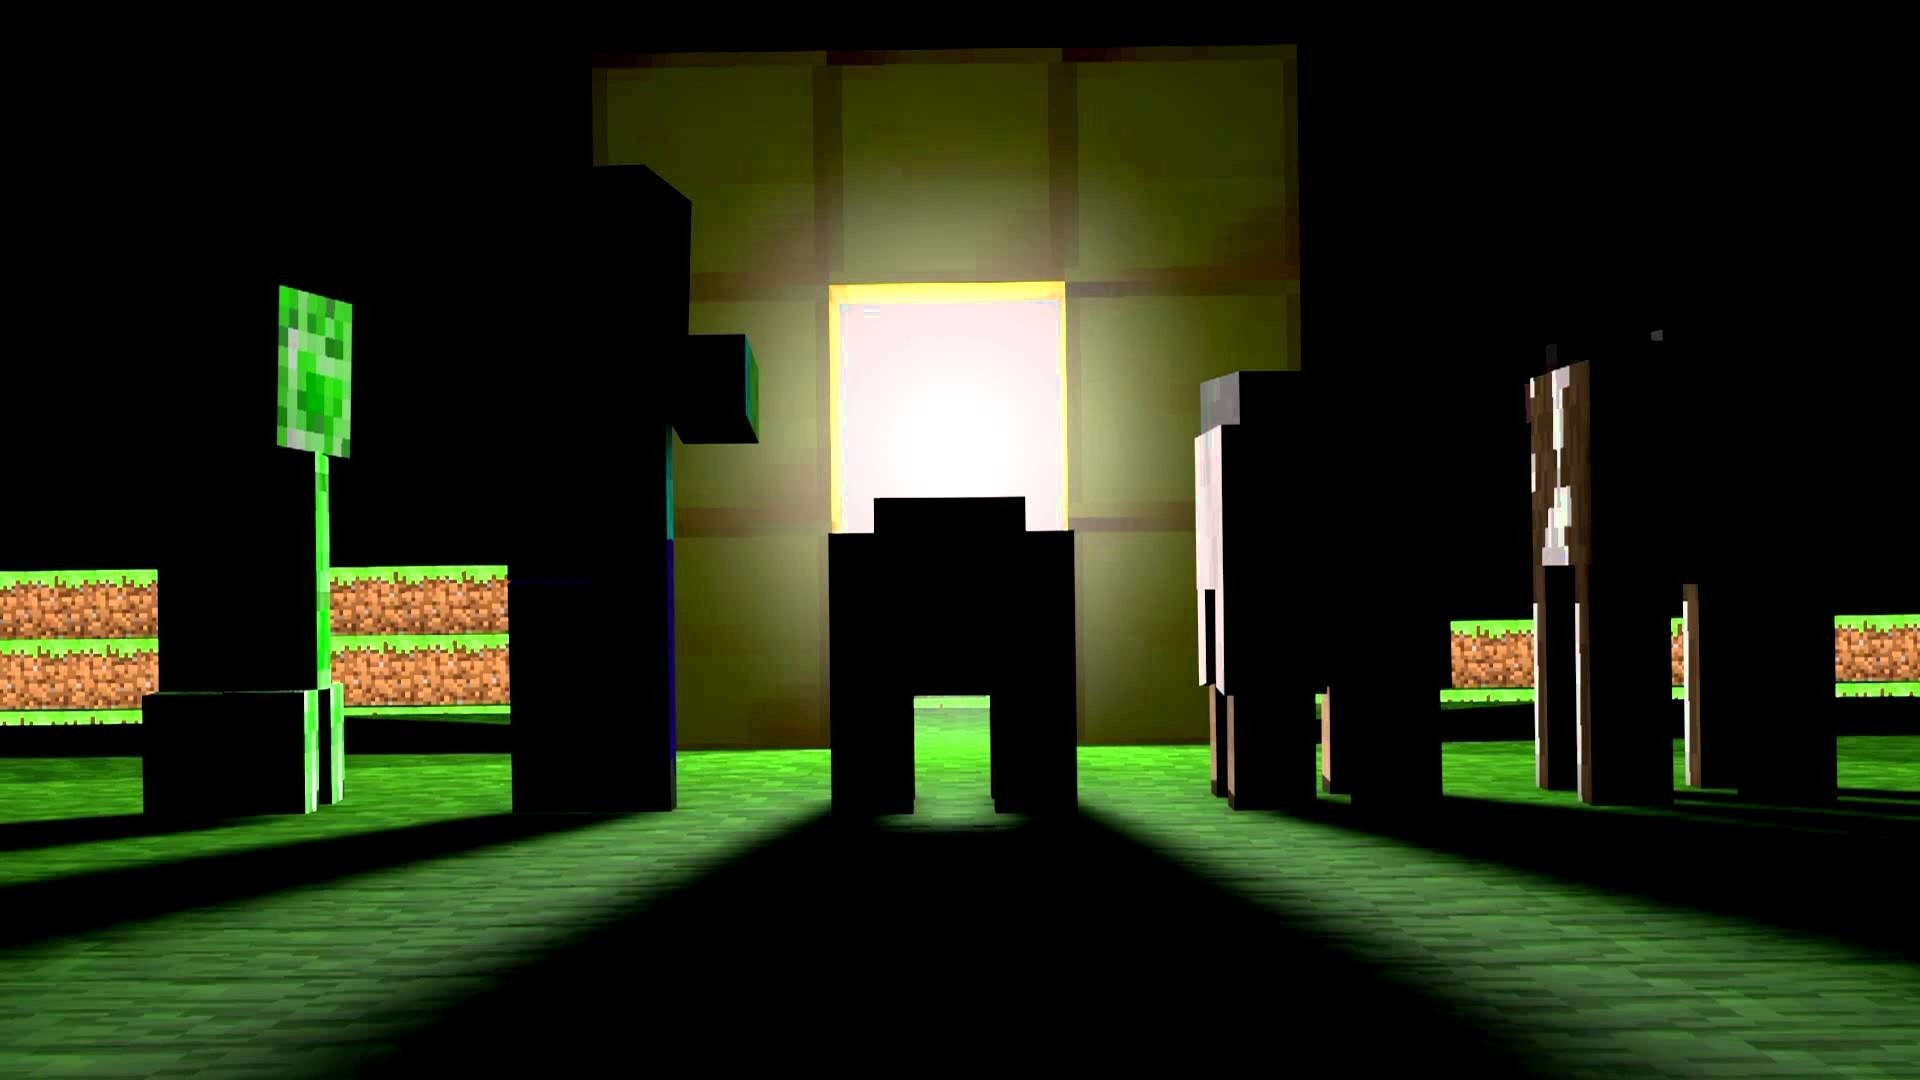 Epic Minecraft Backgrounds (72+ Images